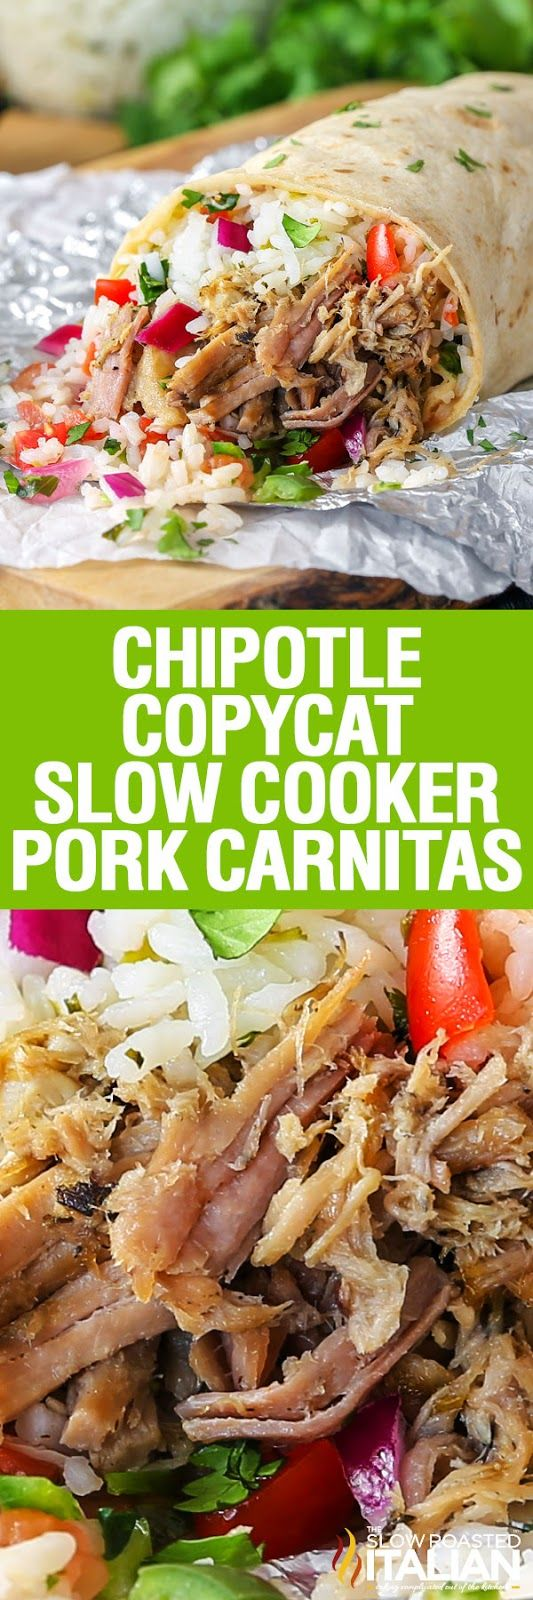 Chipotle Copycat Slow Cooker Pork Carnitas are a luscious slow cooked pork that…